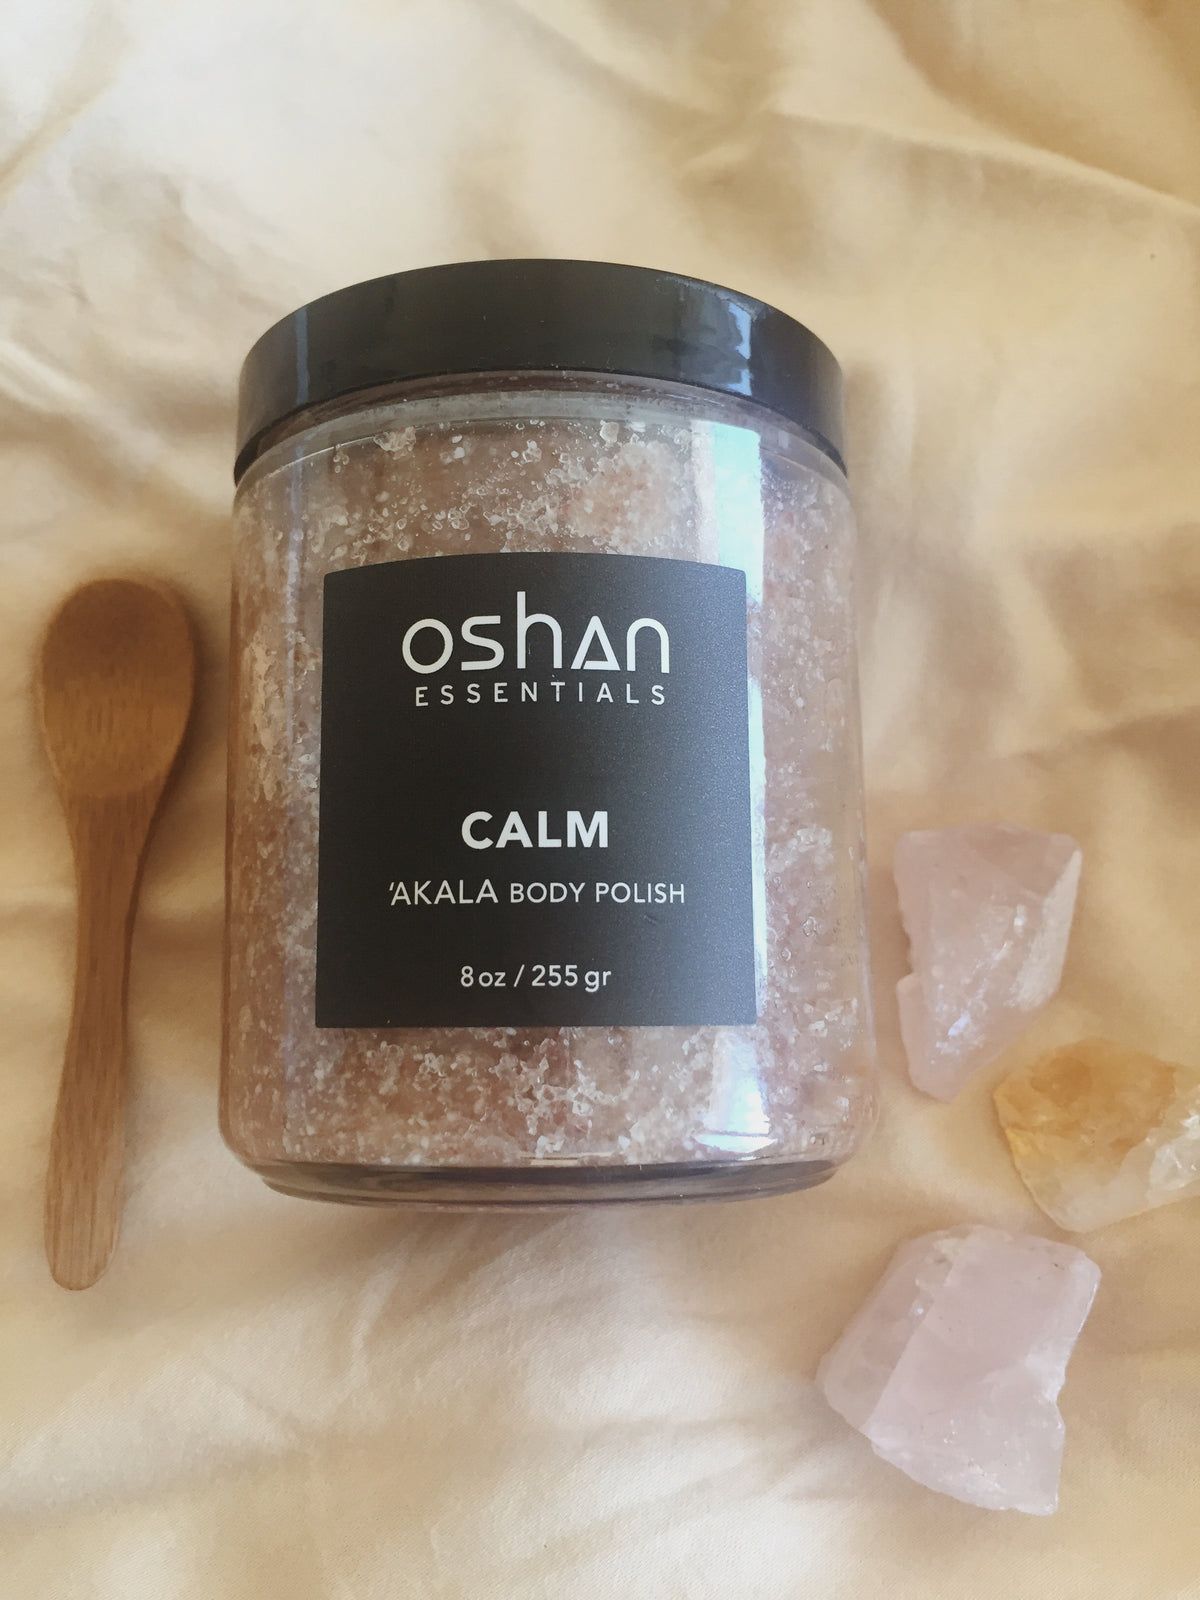 CALM 'AKALA BODY POLISH